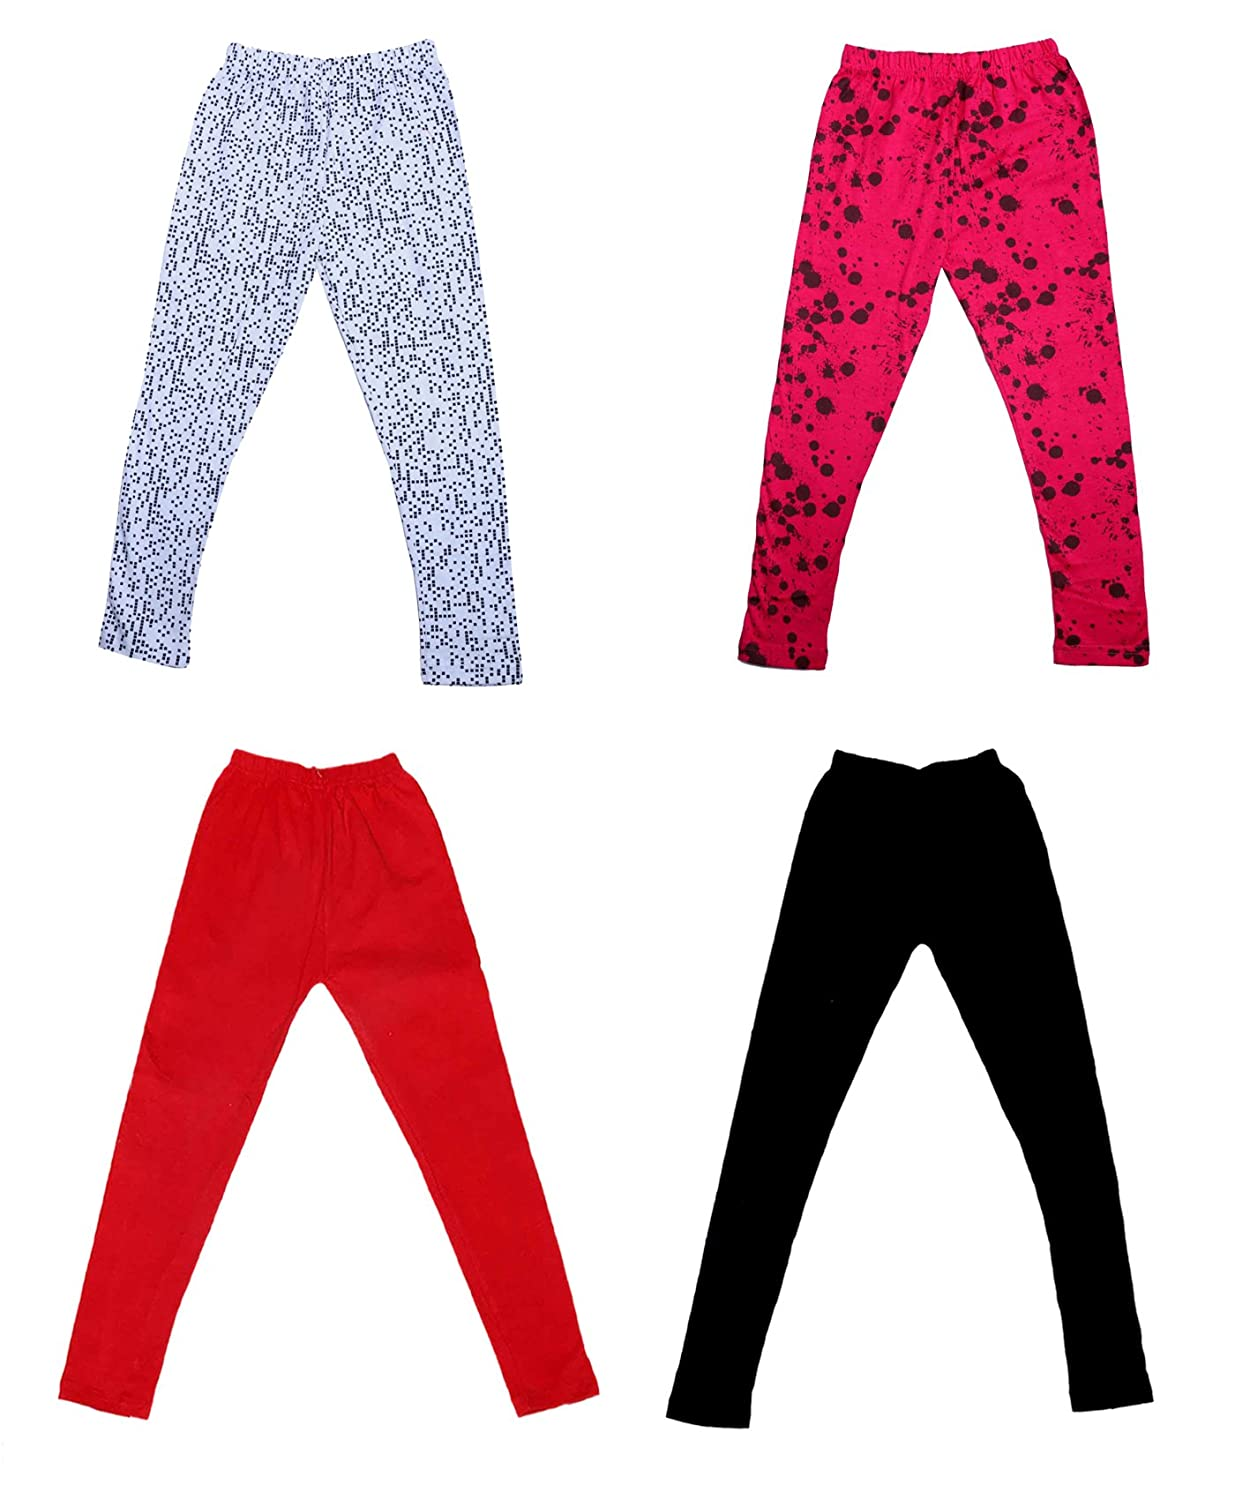 Pack Of 4 and 2 Cotton Printed Legging Pants Indistar Girls 2 Cotton Solid Legging Pants /_Multicolor/_Size-5-6 Years/_71404052021-IW-P4-28